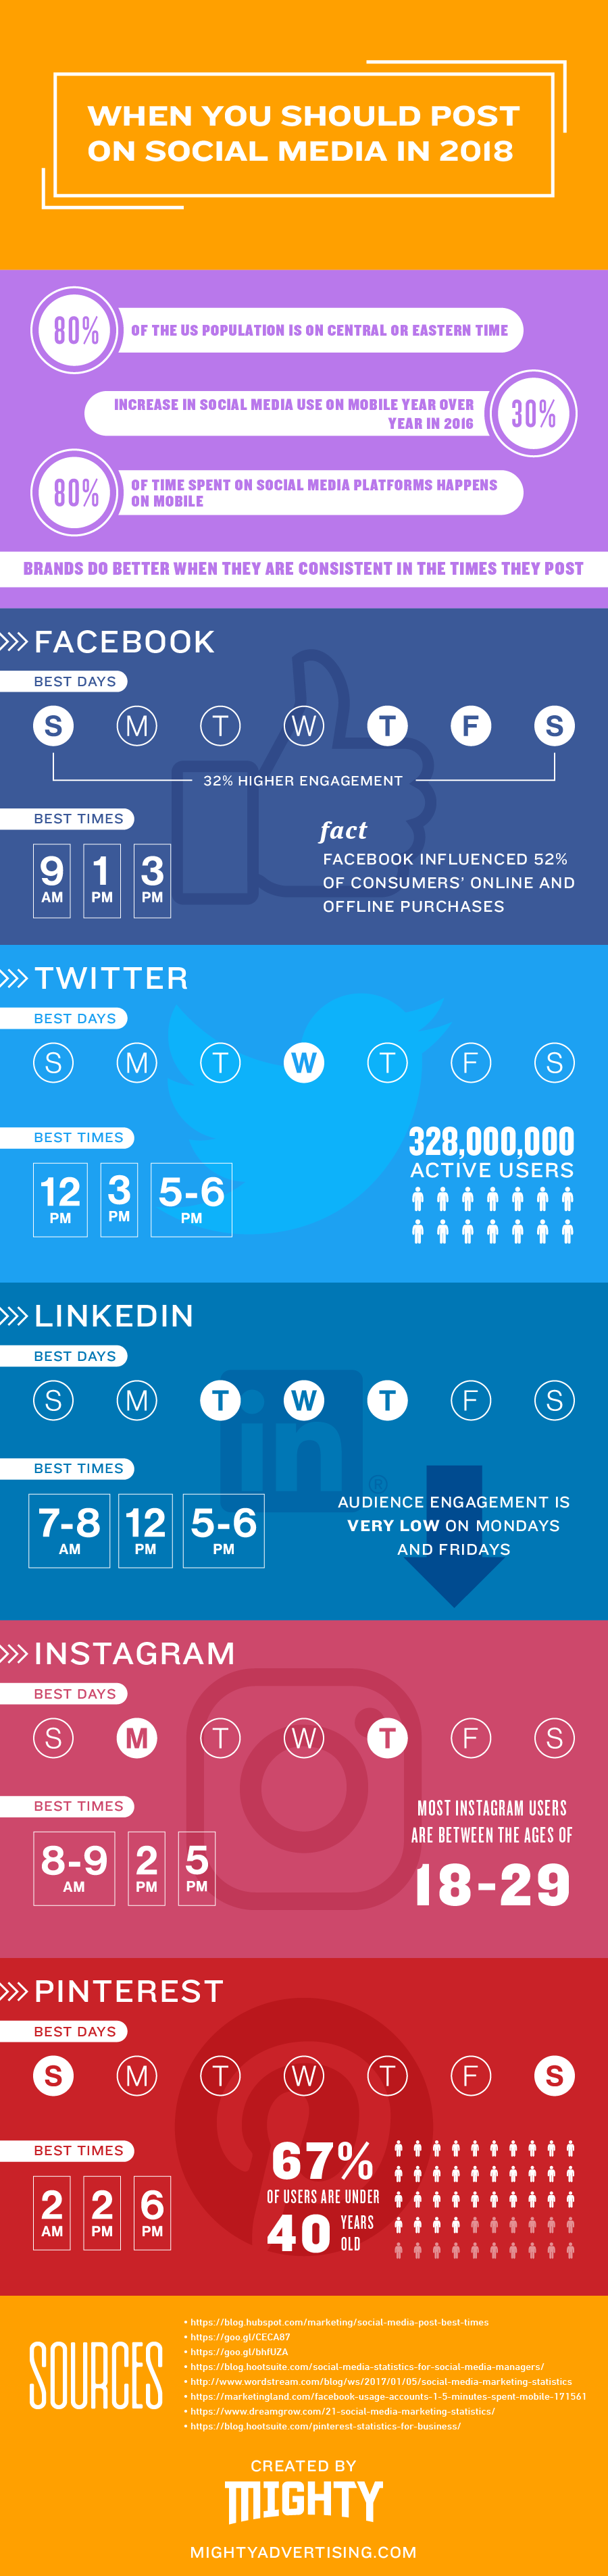 MIGHTY_00235_Blog_Infographic_SocialMediaTime.png